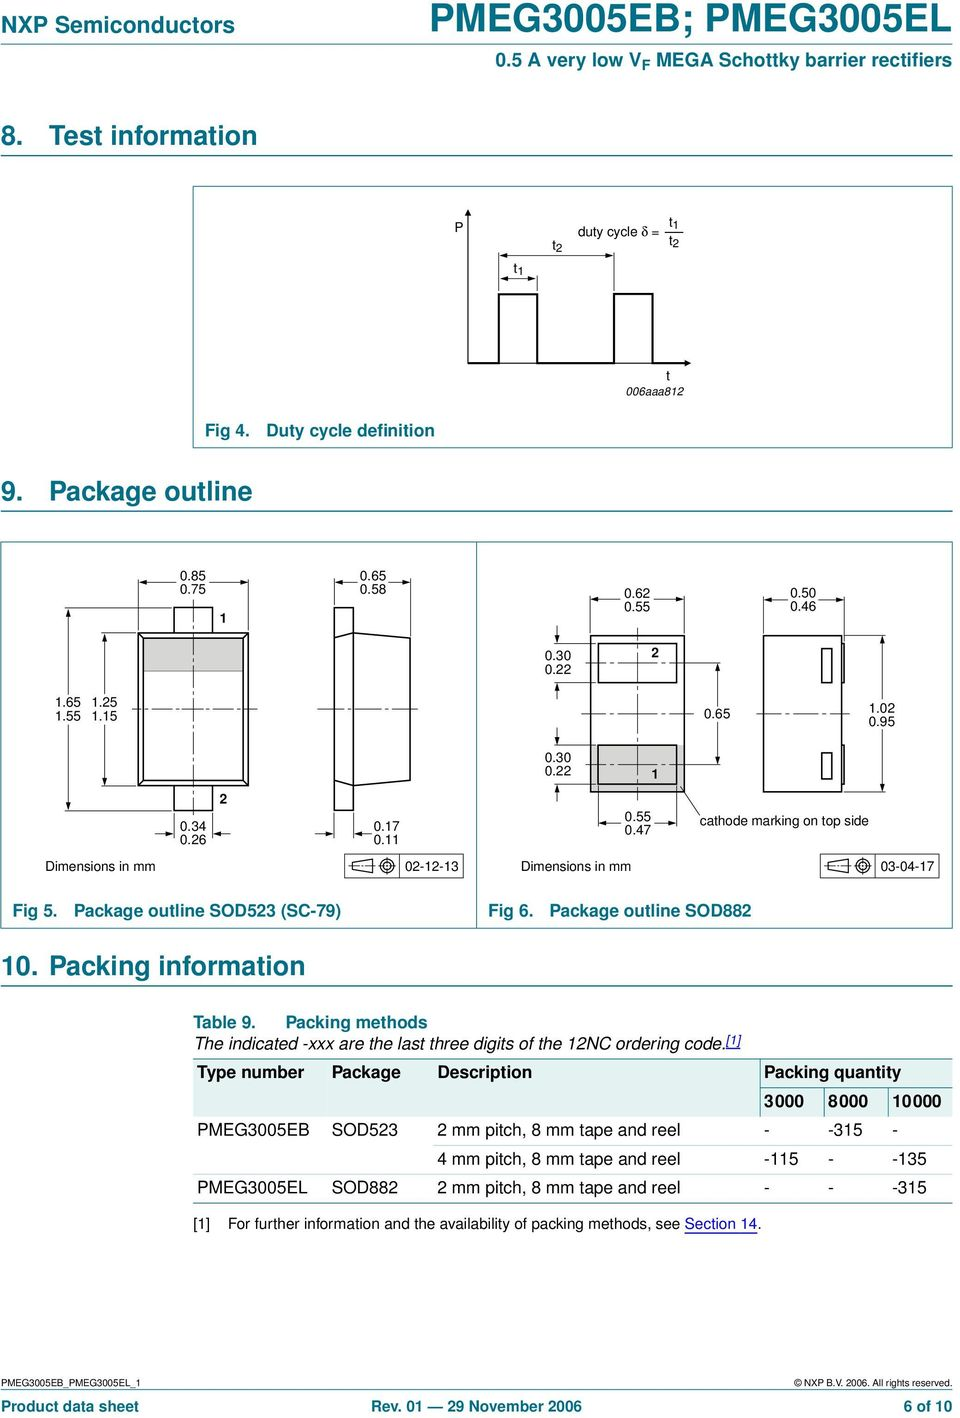 Packing information Table 9. Packing methods The indicated -xxx are the last three digits of the 2NC ordering code.